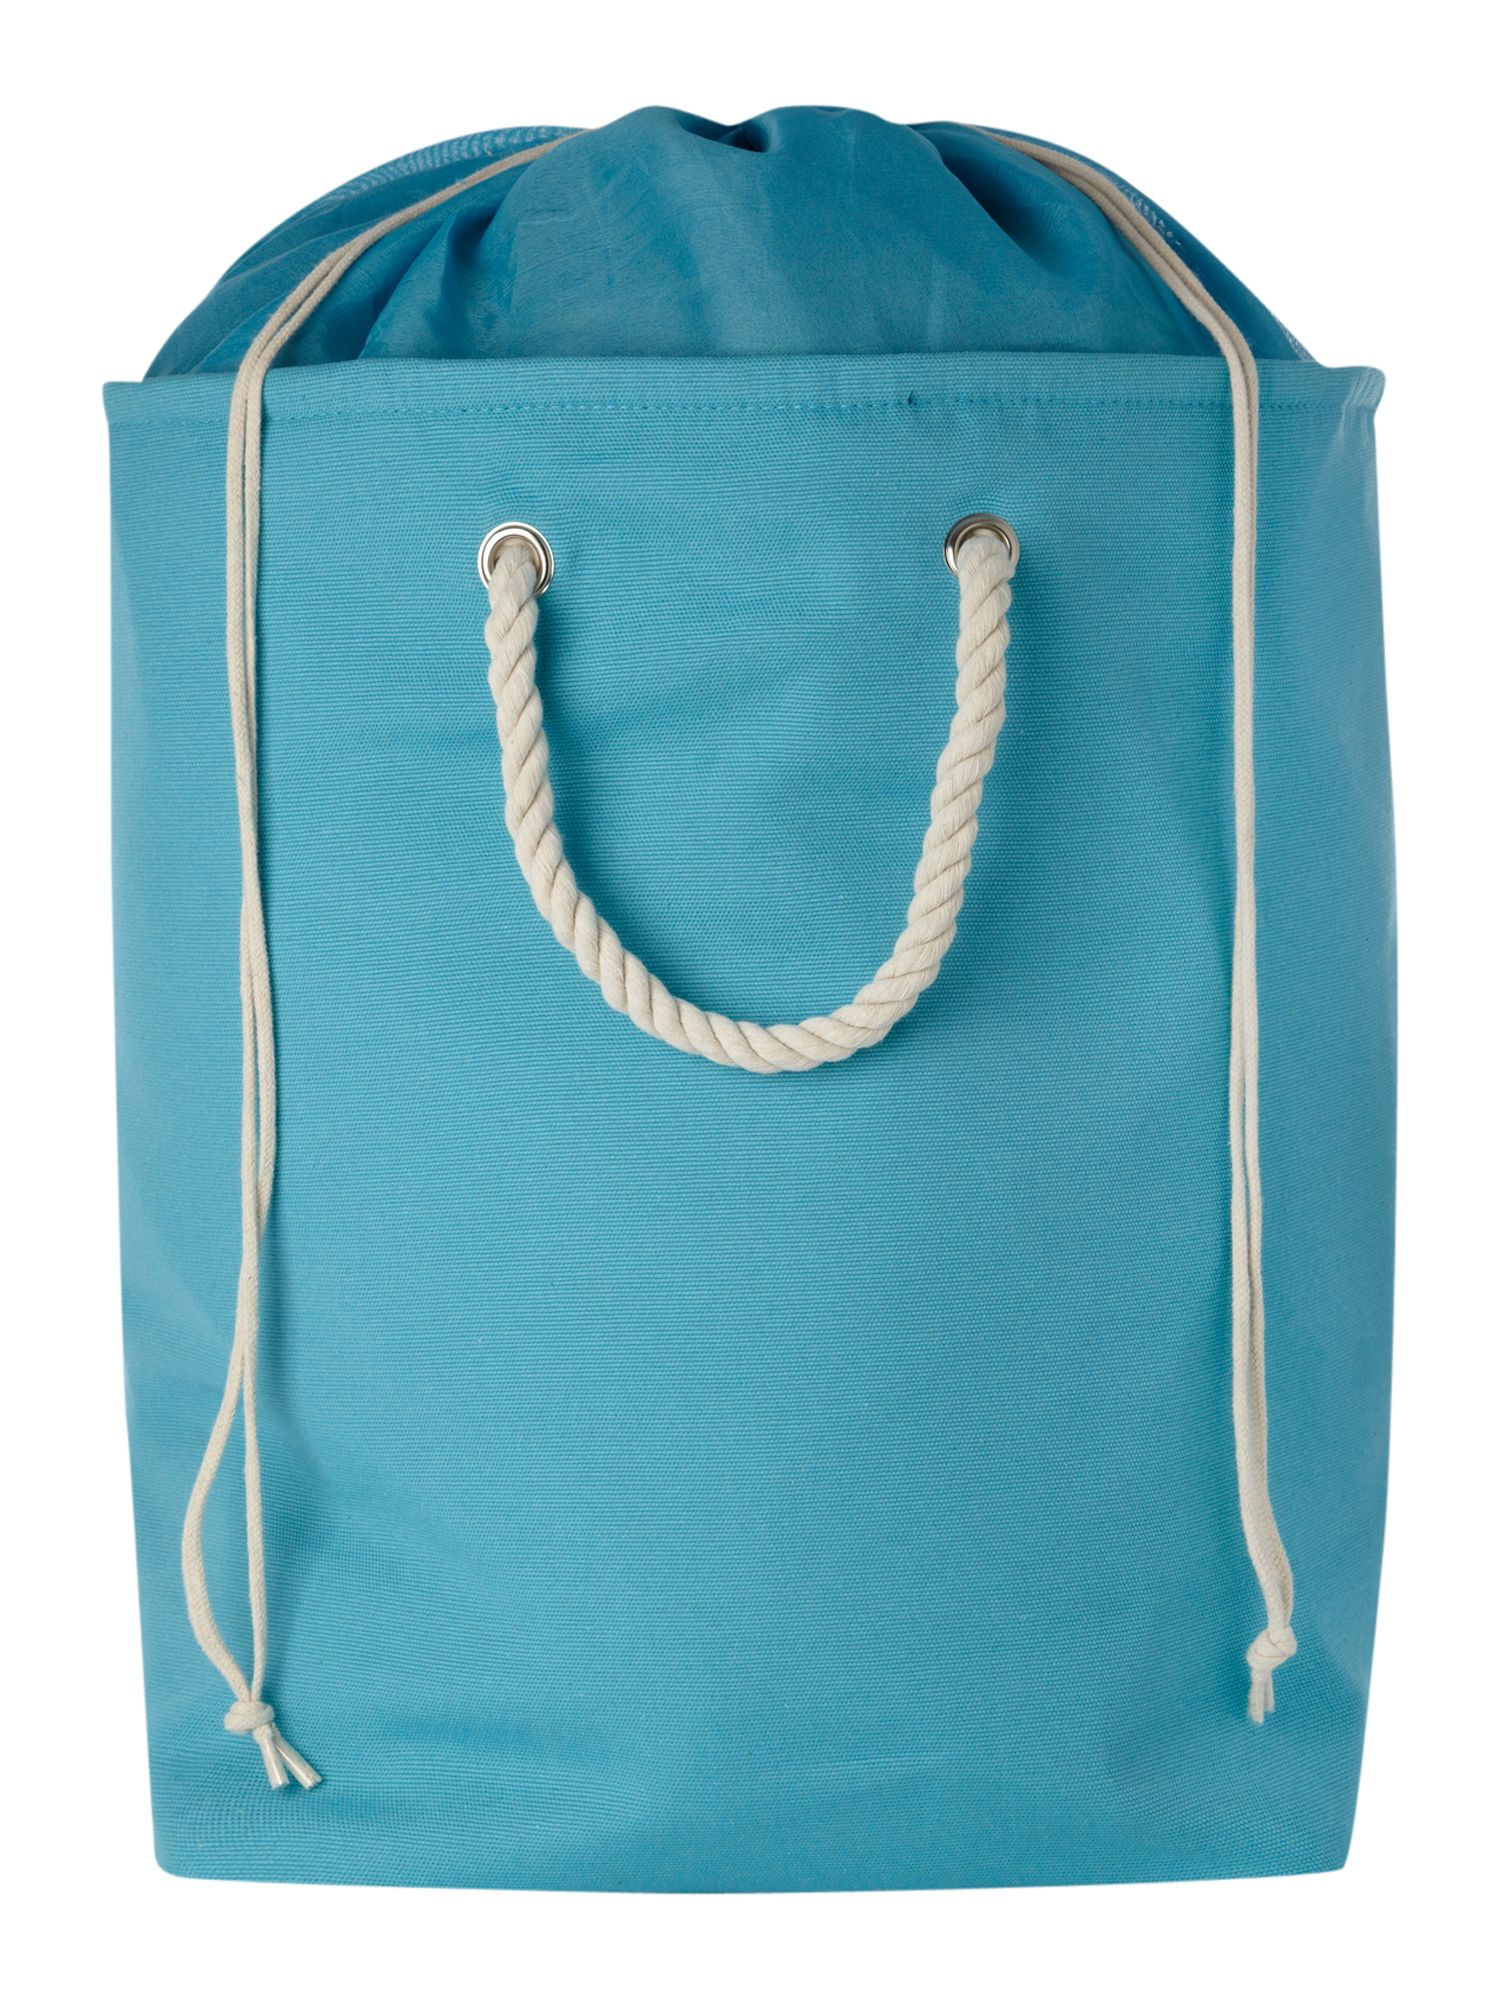 Aqua canvas laundry bag